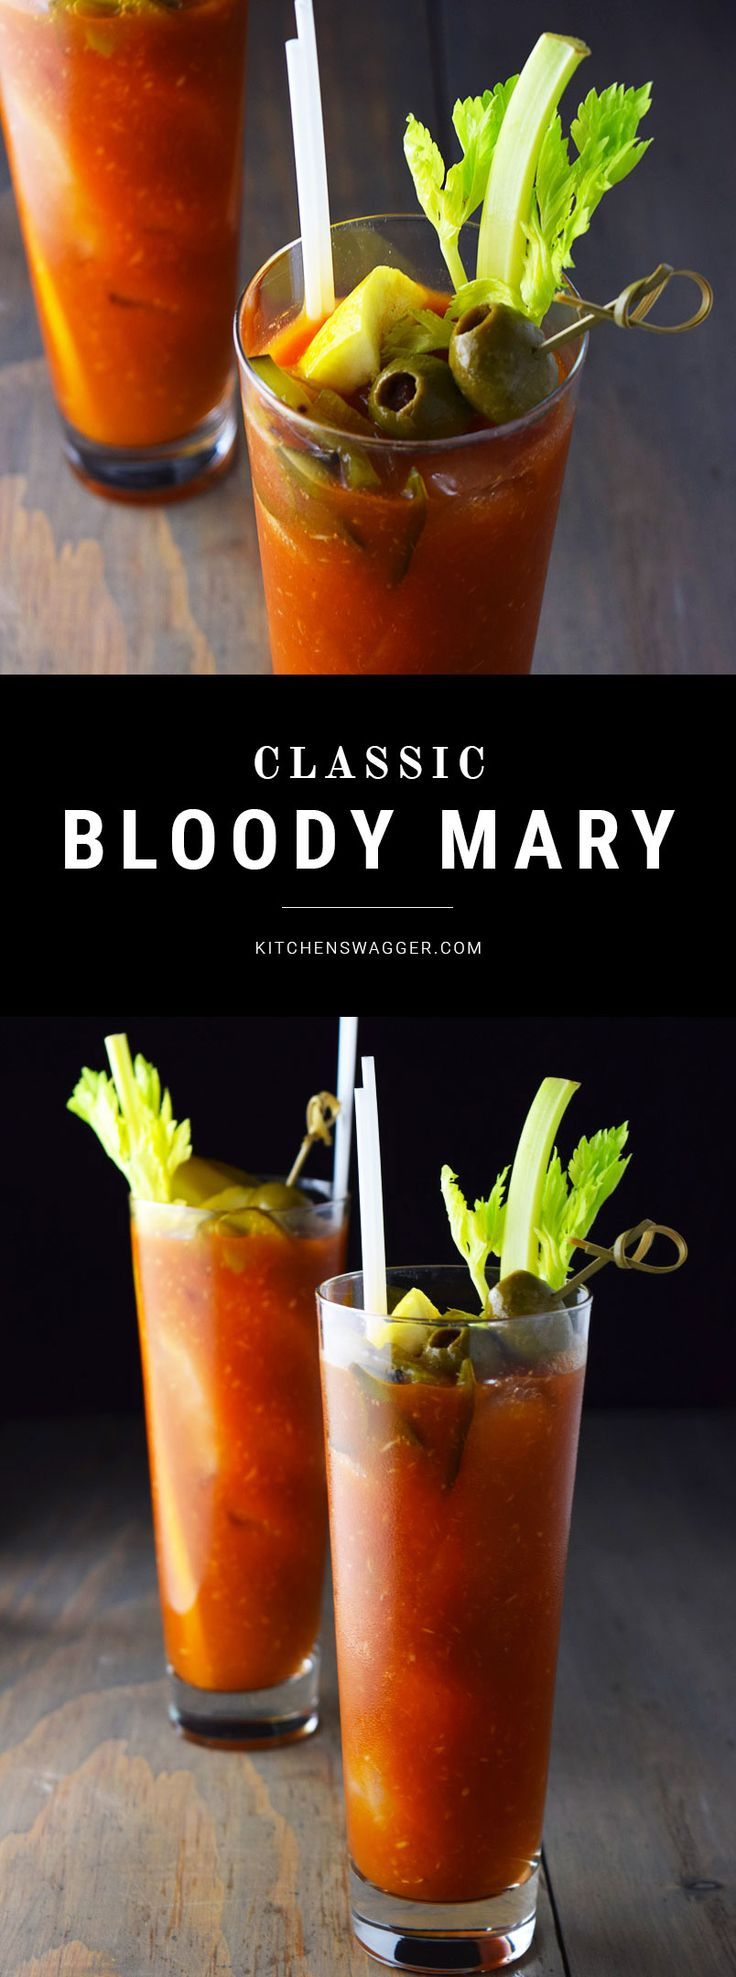 25+ best ideas about Bloody Mary Bar on Pinterest | Best bloody mary ...